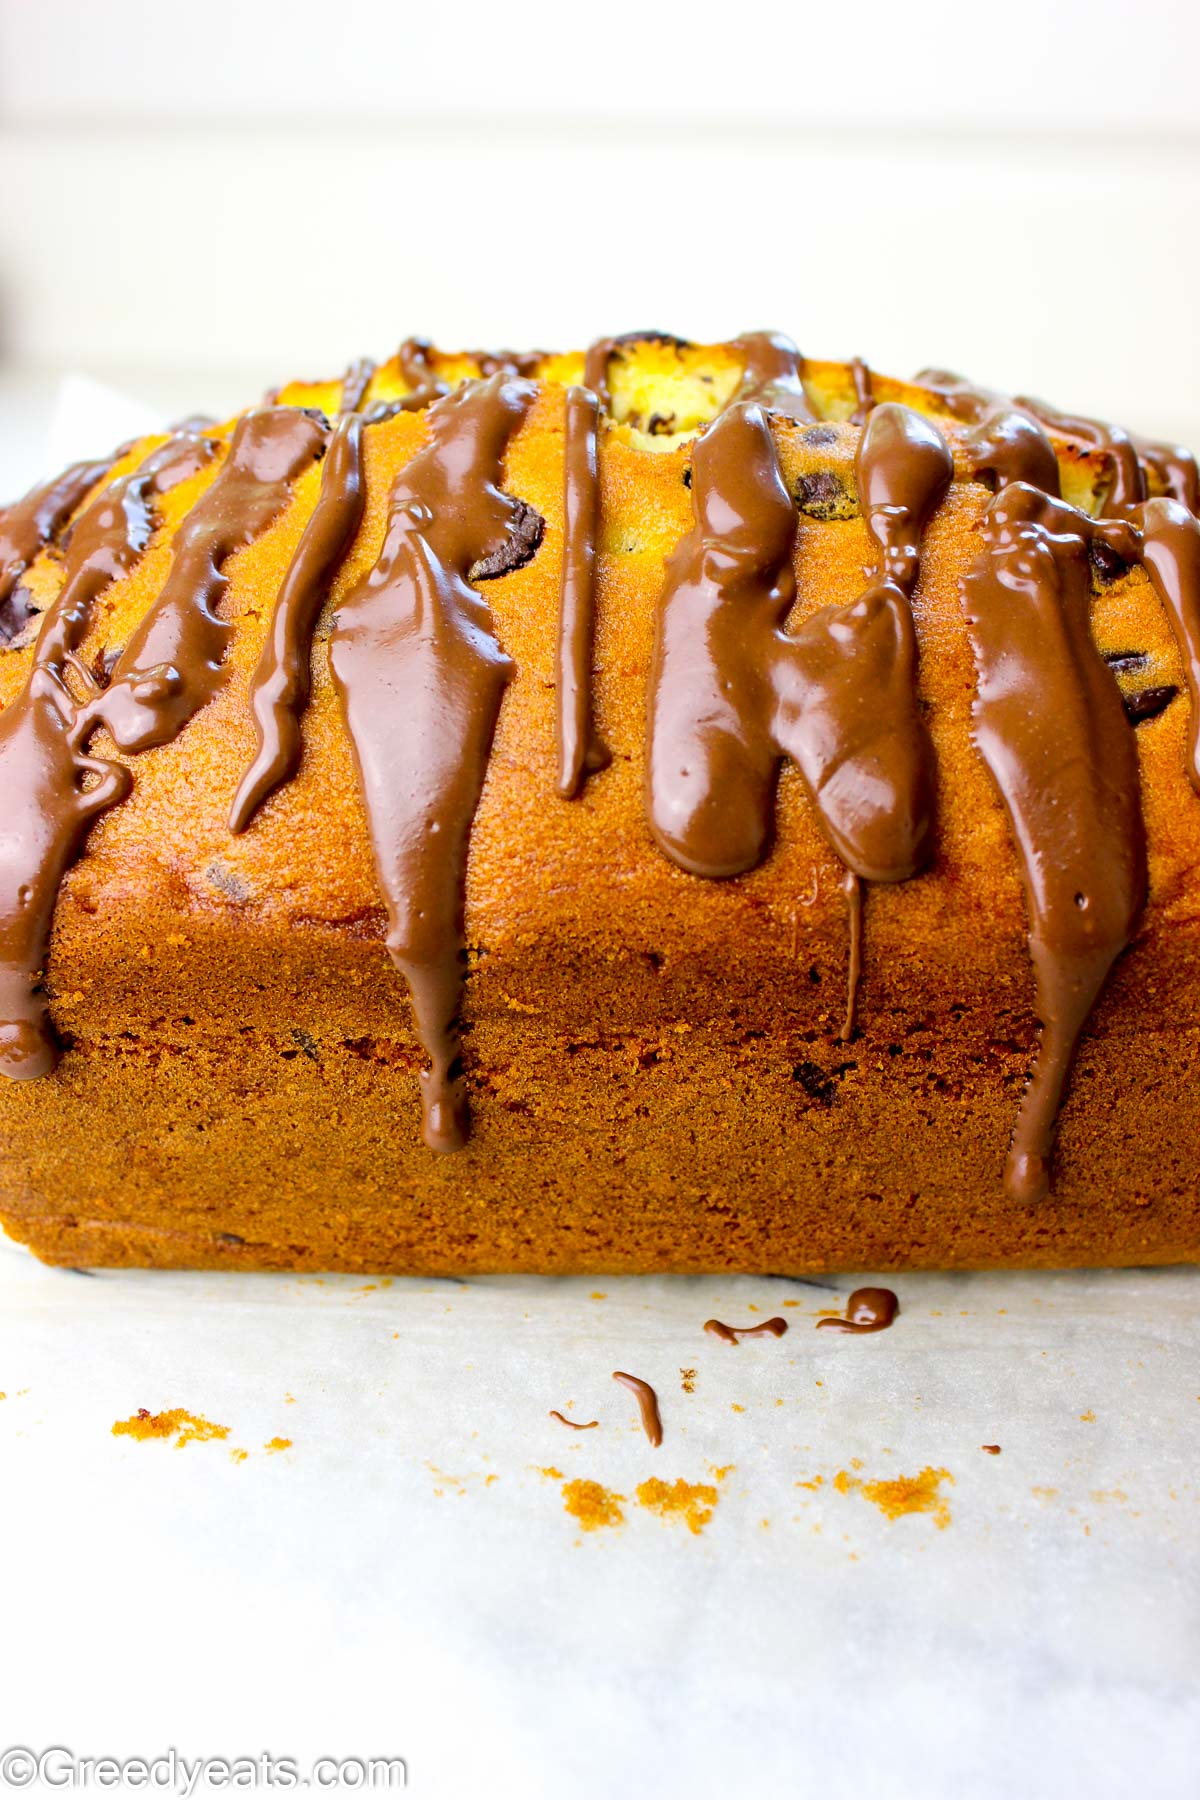 Soft and buttery Pound Cake drizzled with chocolate ganache kept on a parchment paper.